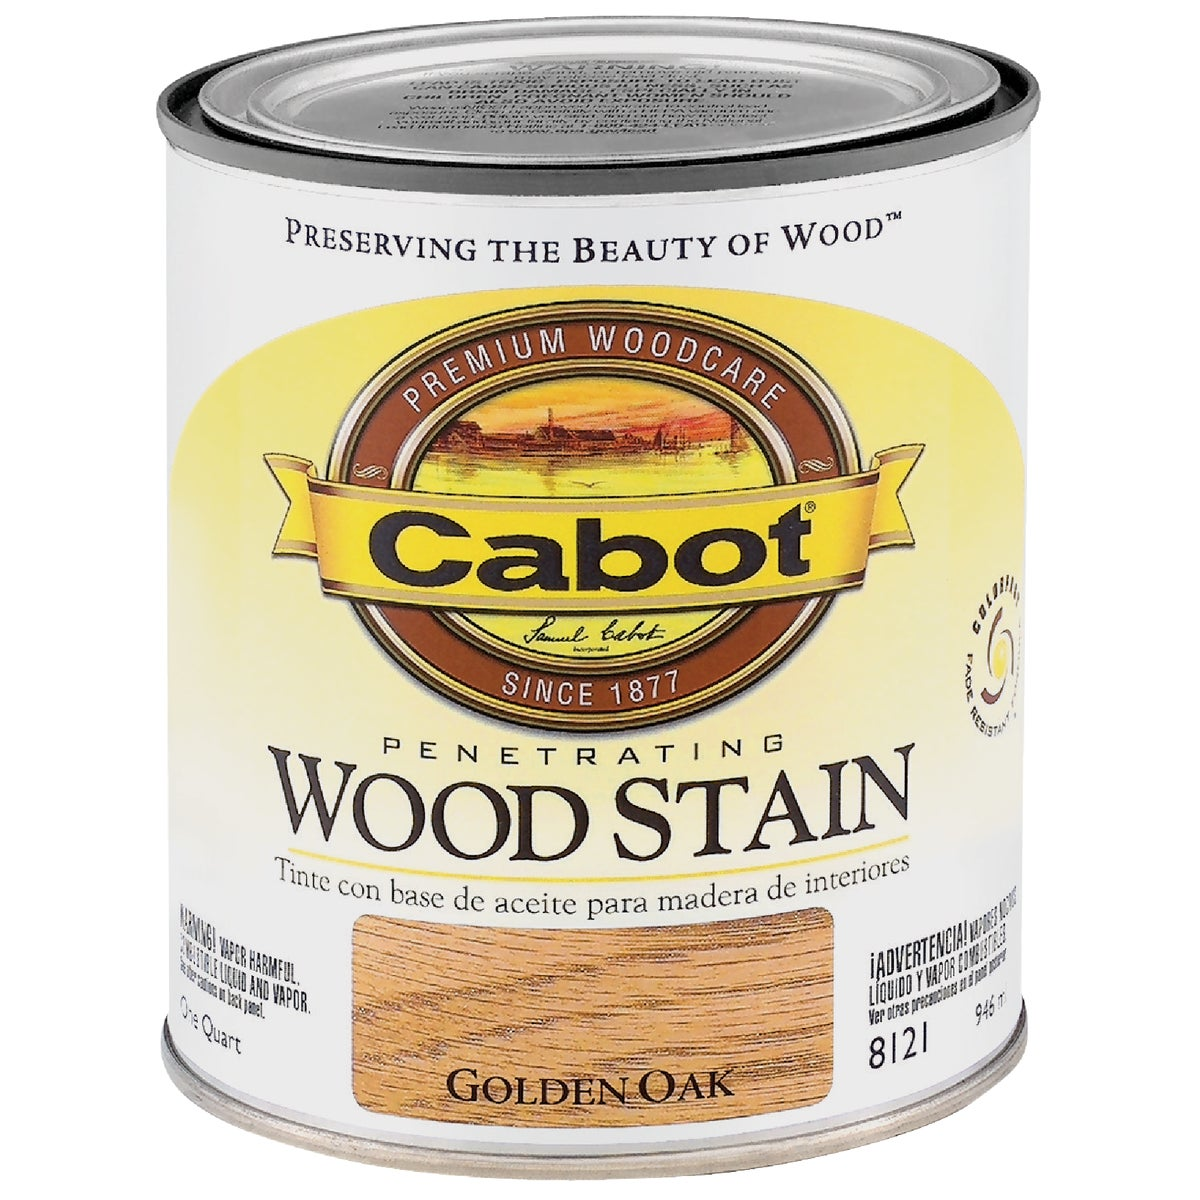 INT GOLDN OAK WOOD STAIN - 144.0008121.005 by Valspar Corp